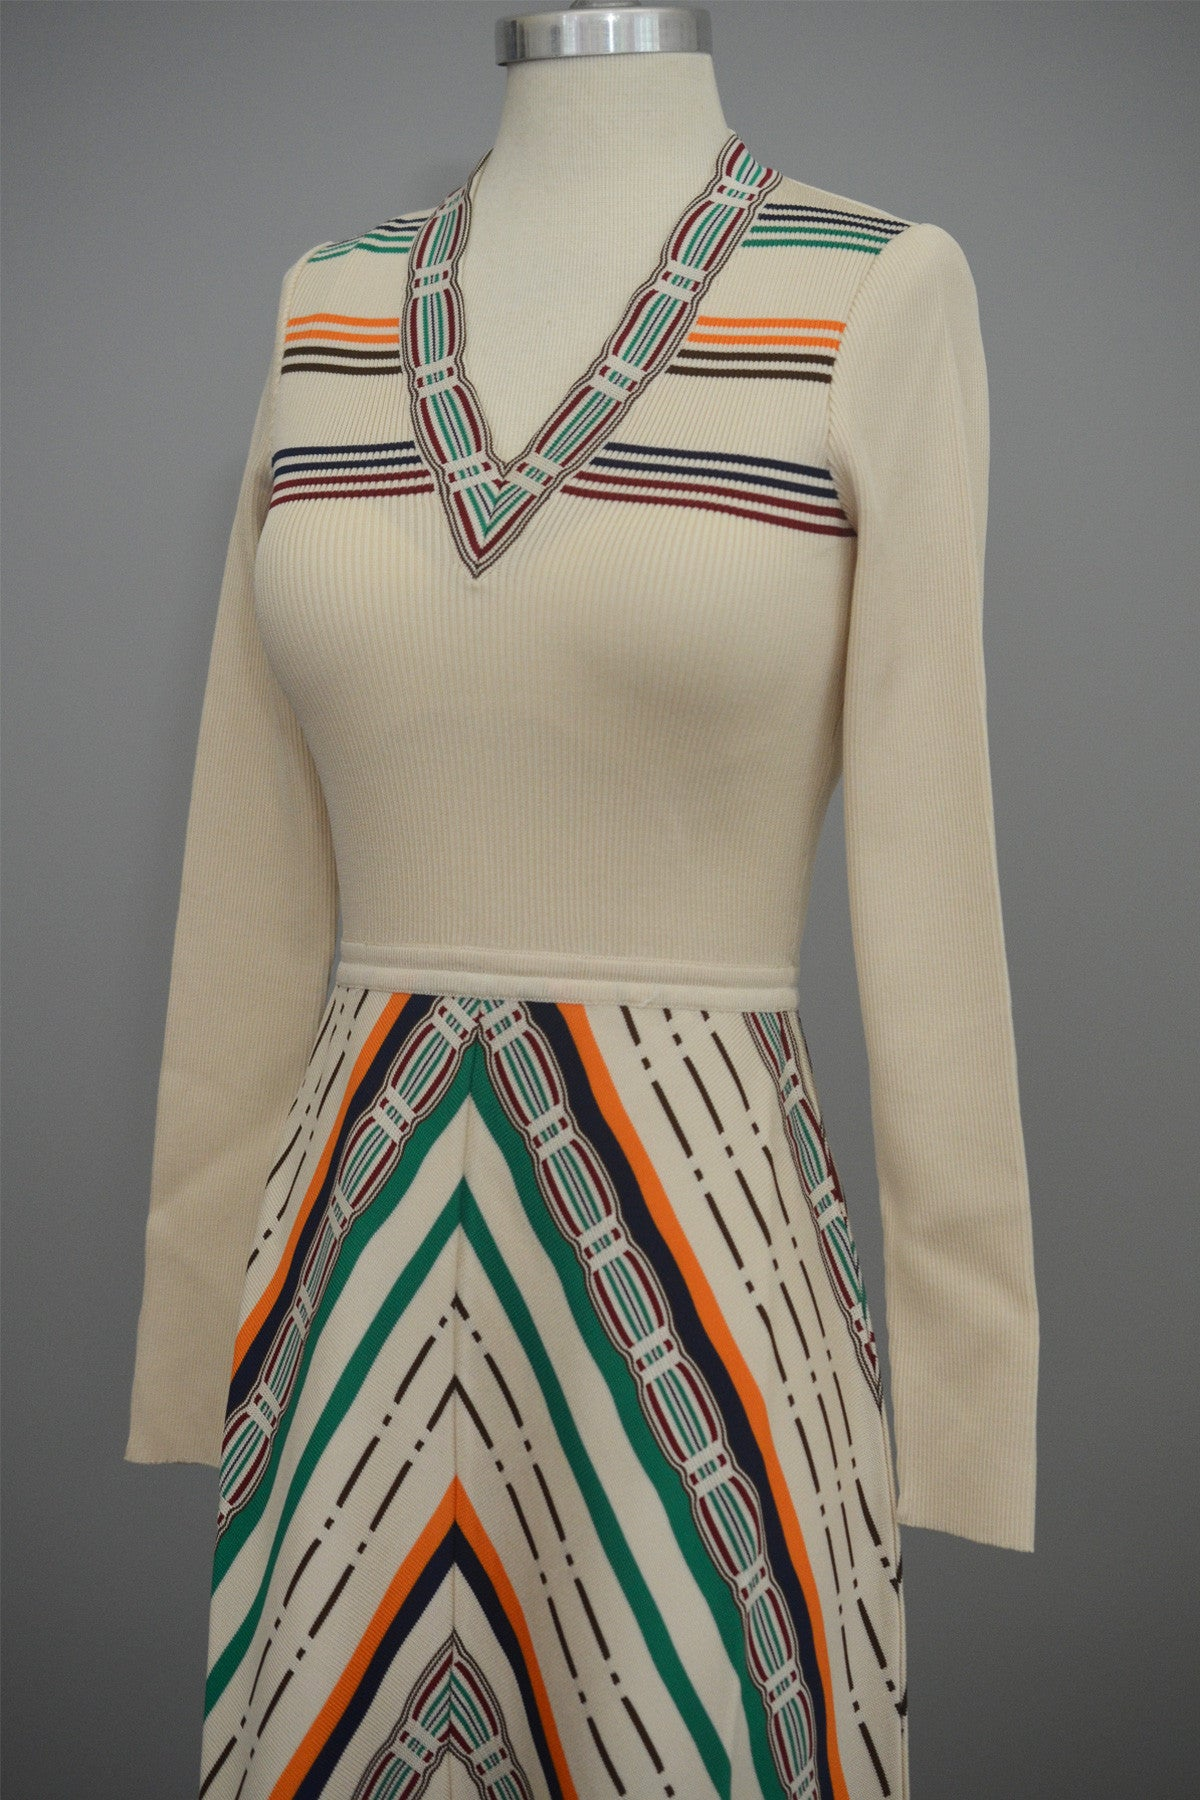 MOD Vintage 1970s Cream Chevron Stripes A-Line Maxi Knit Dress by Crissa Made in Italy